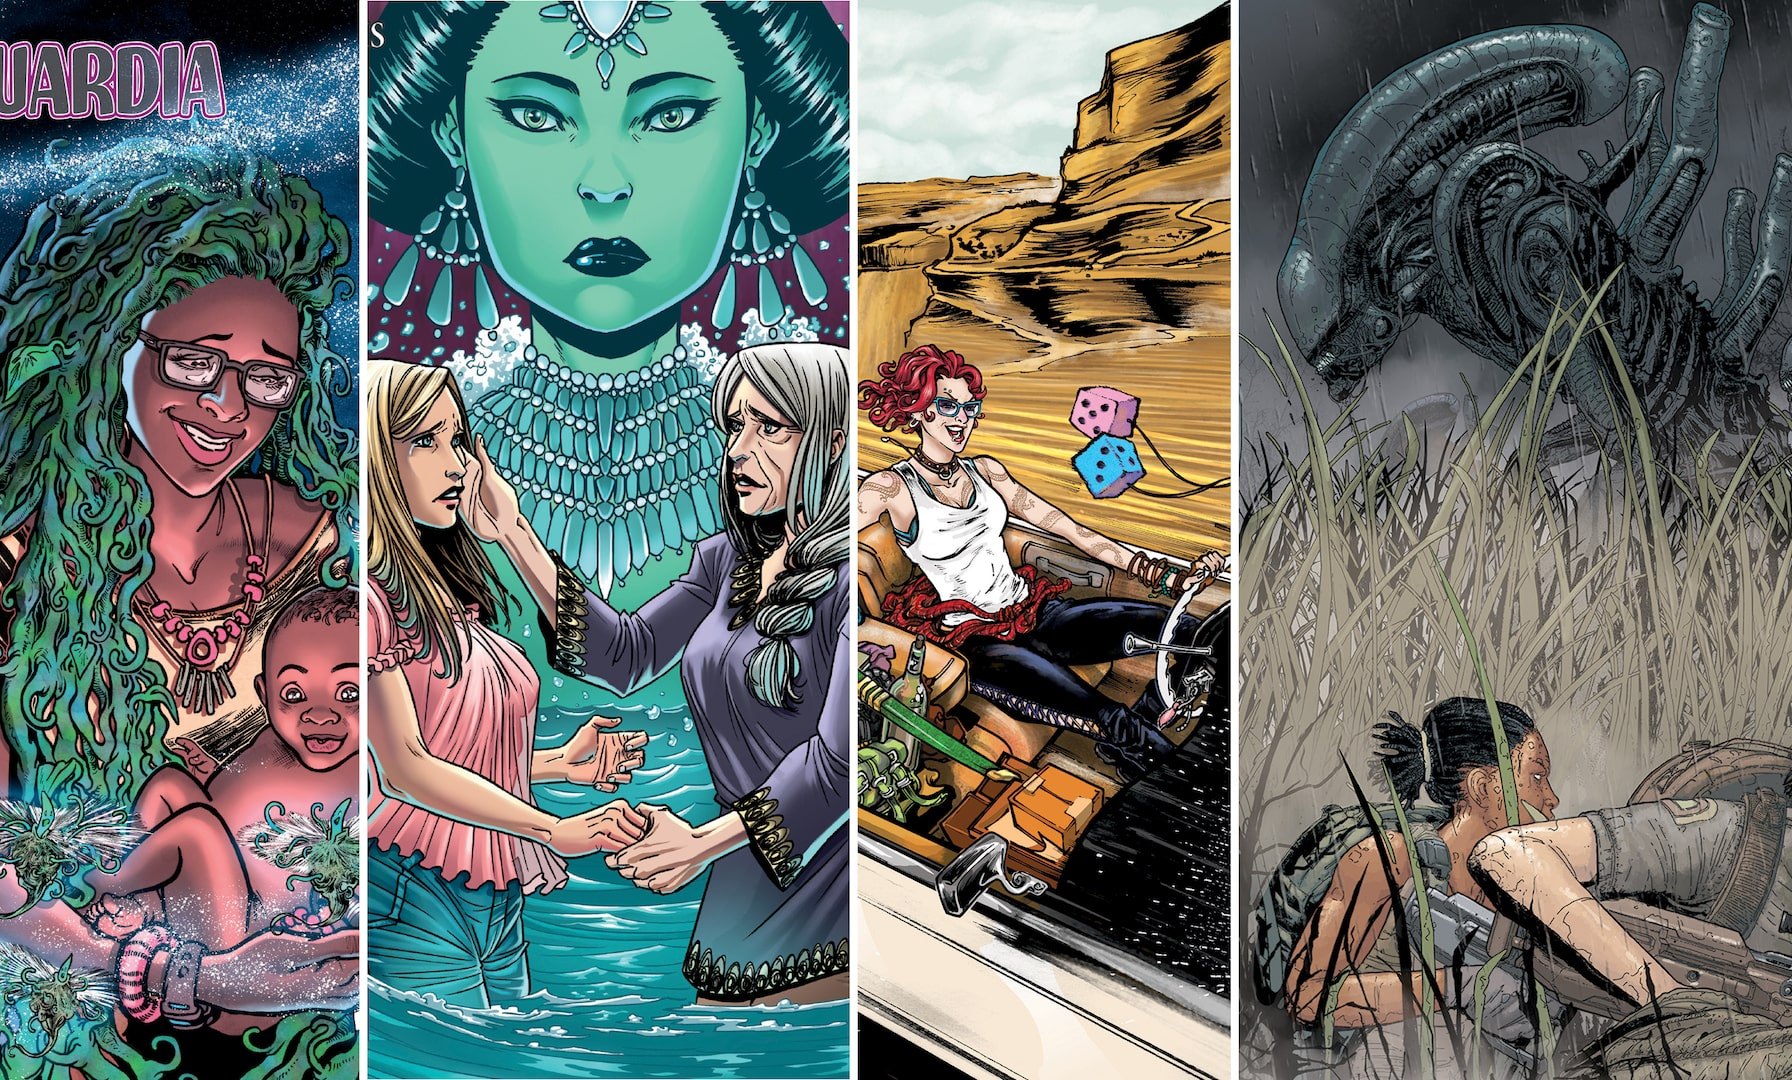 [EXCLUSIVE] Dark Horse March 2019 solicitations: Calamity Kate, Aliens: Resistance, and more!